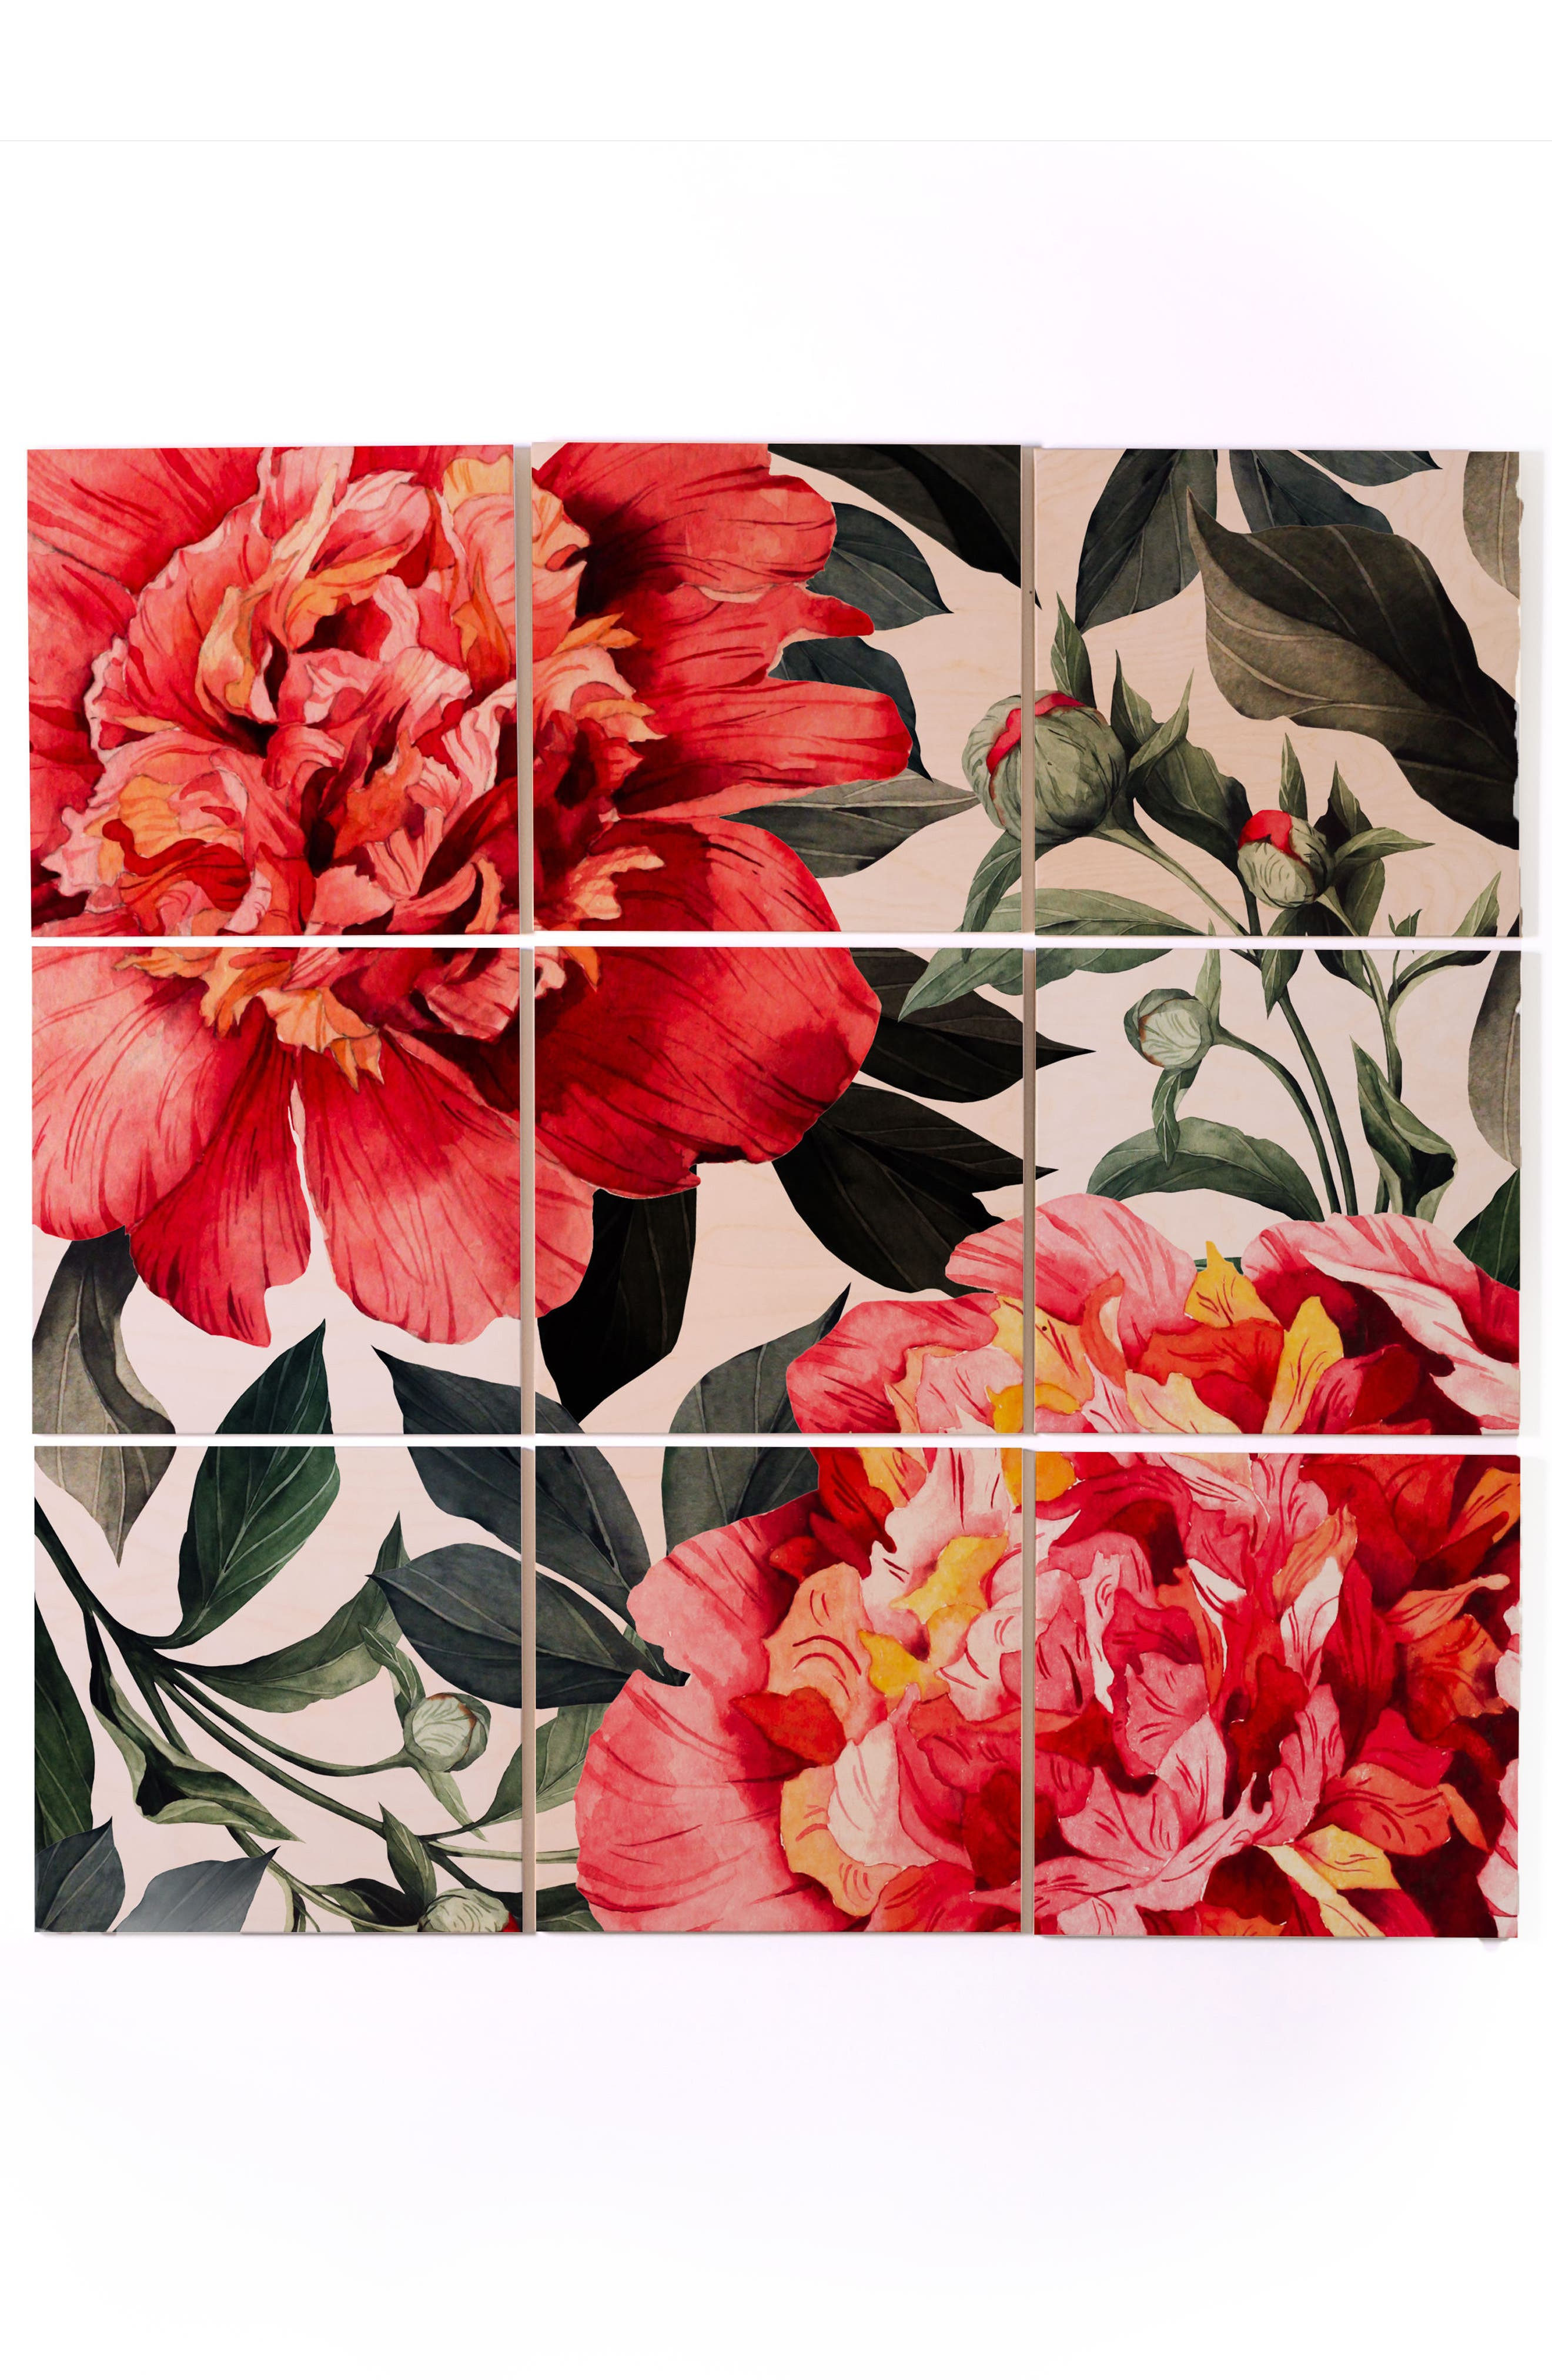 Red Flowers 9-Piece Wood Wall Mural,                             Main thumbnail 1, color,